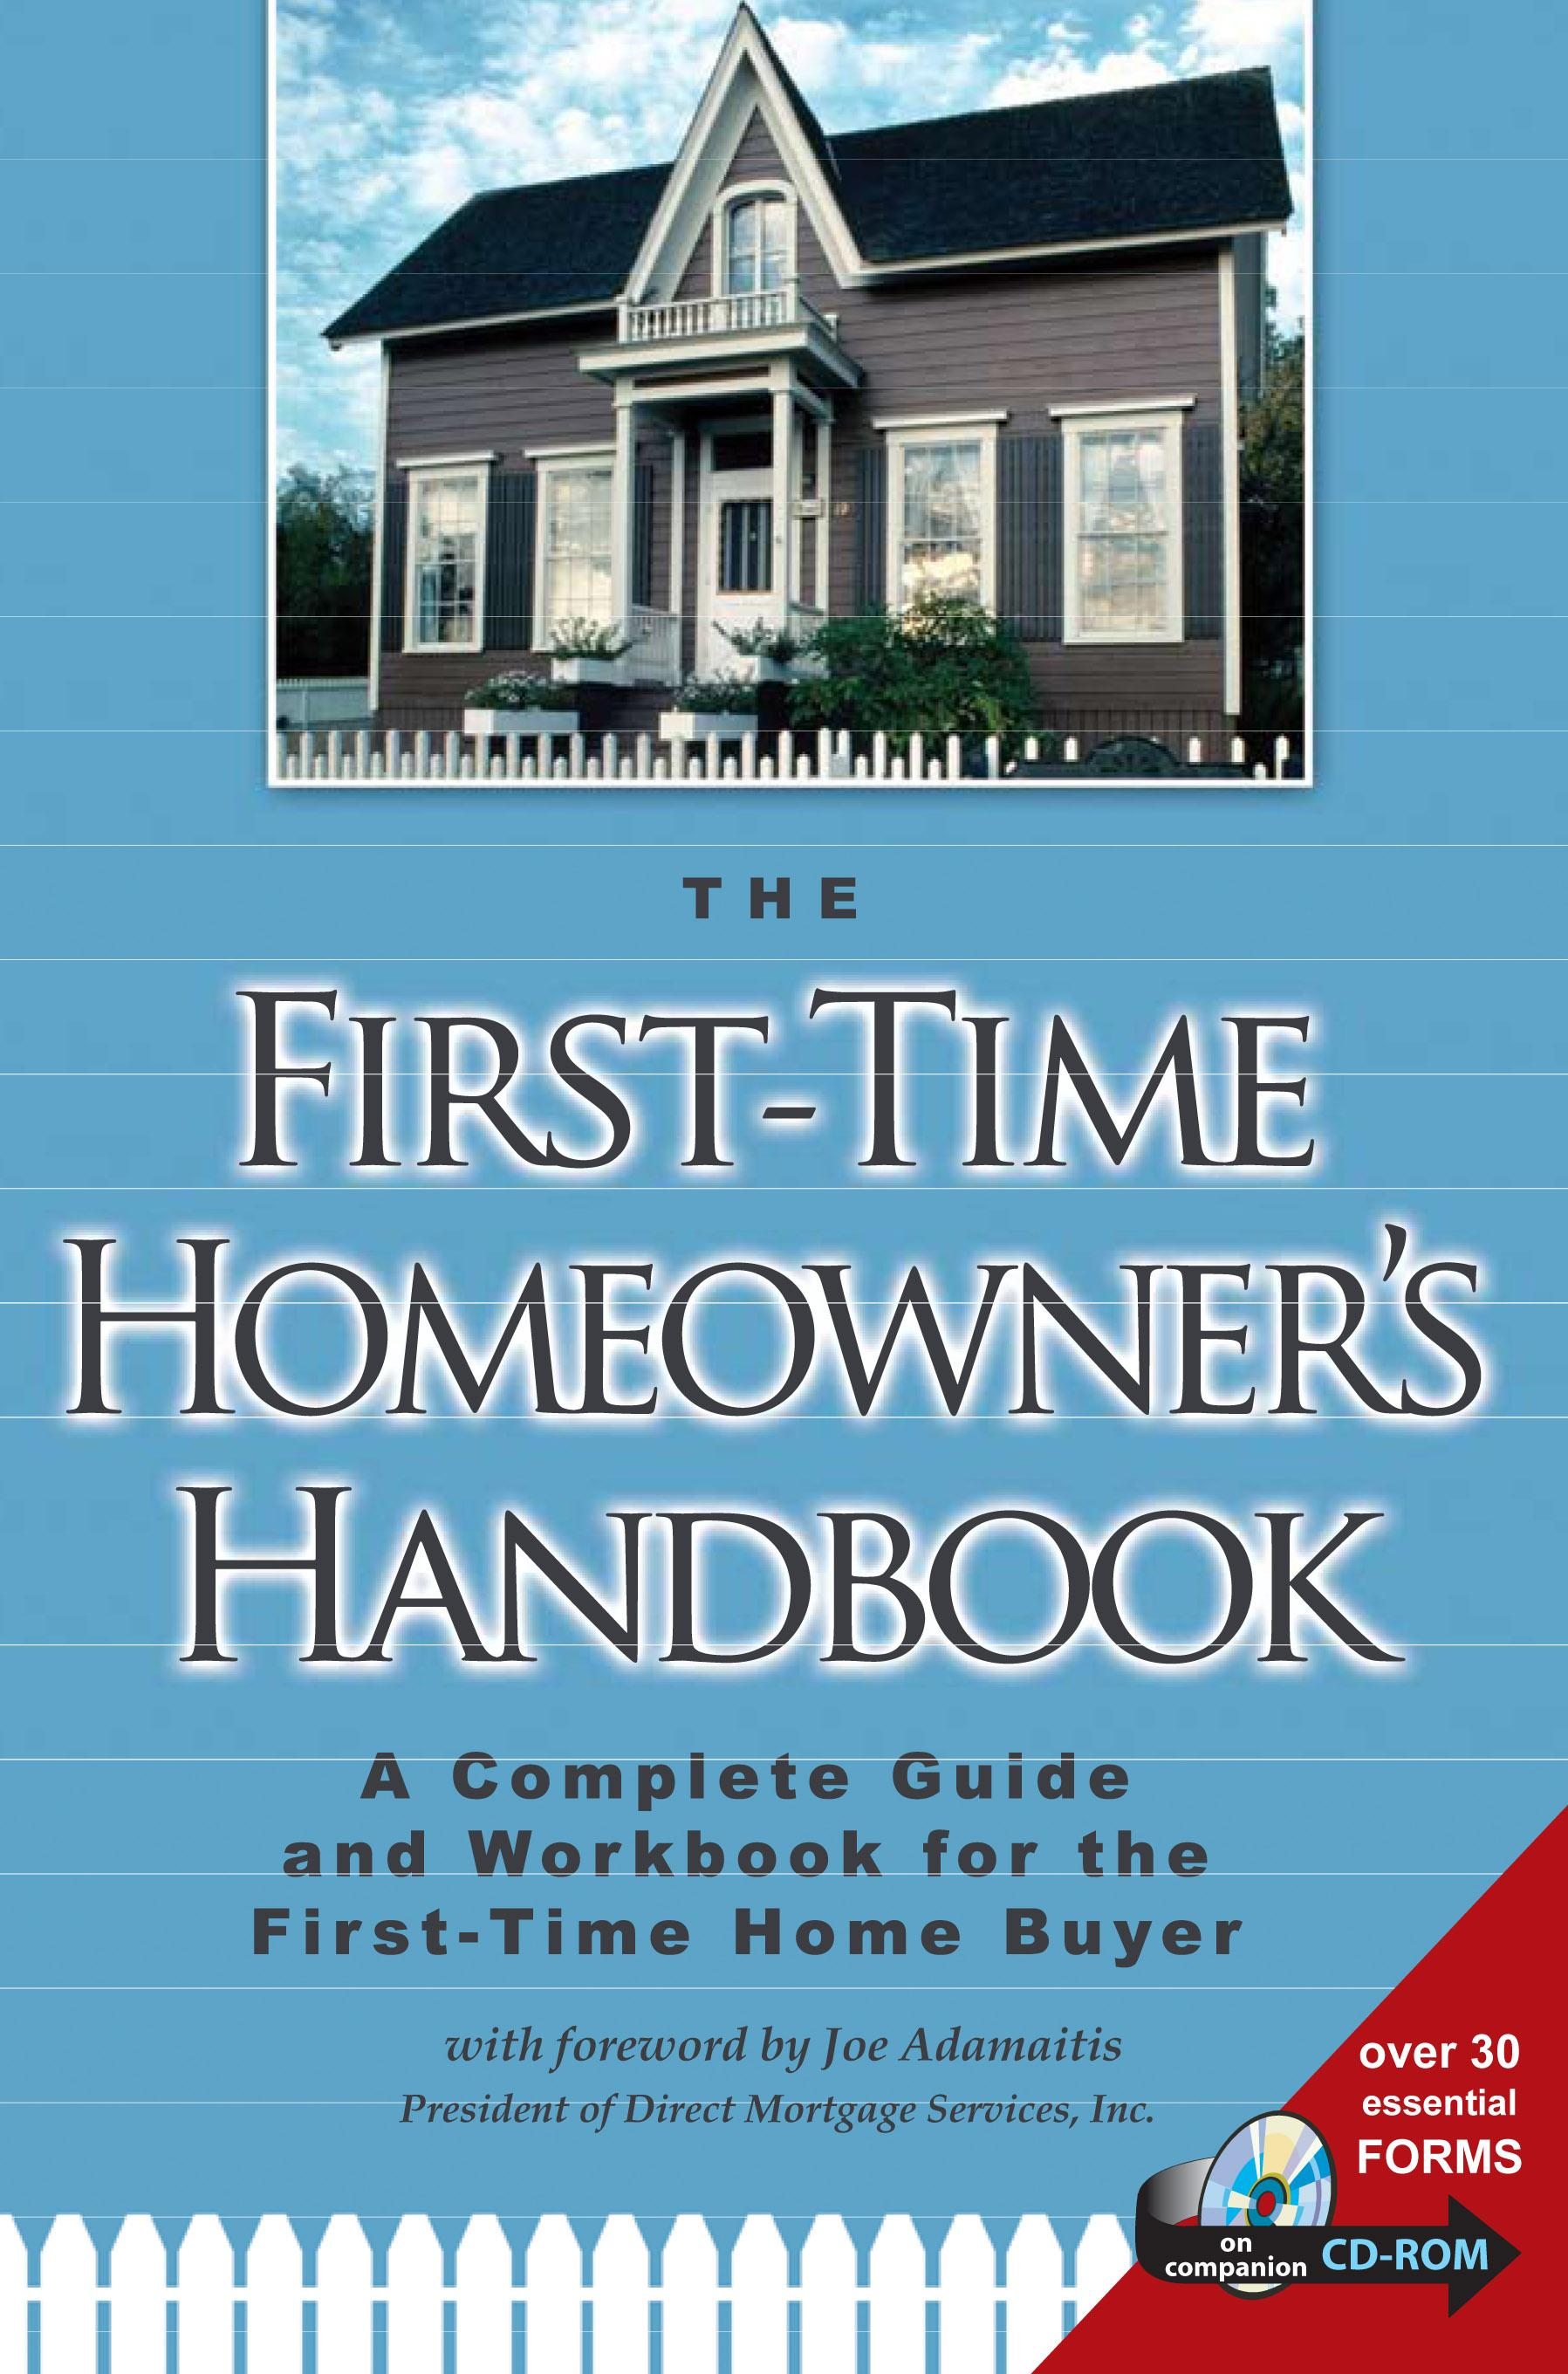 The First-Time Homeowner's Handbook - A Complete Guide and Workbook for the First Time Home Buyer EB9787772504073